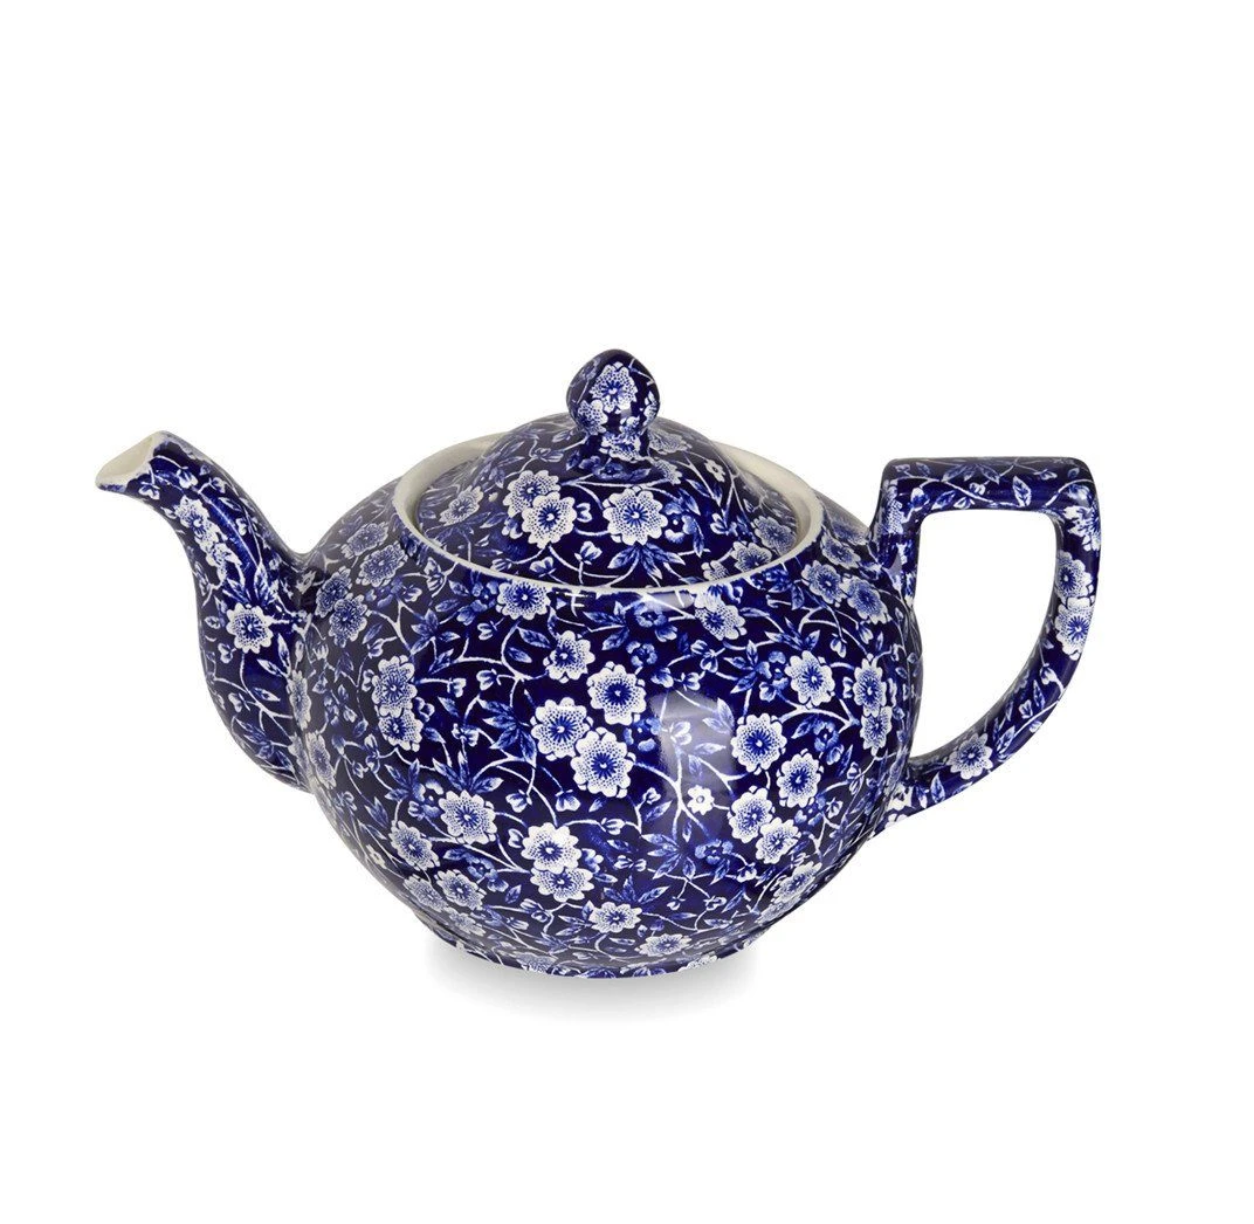 Burleigh UK Blue Calico - Teapot